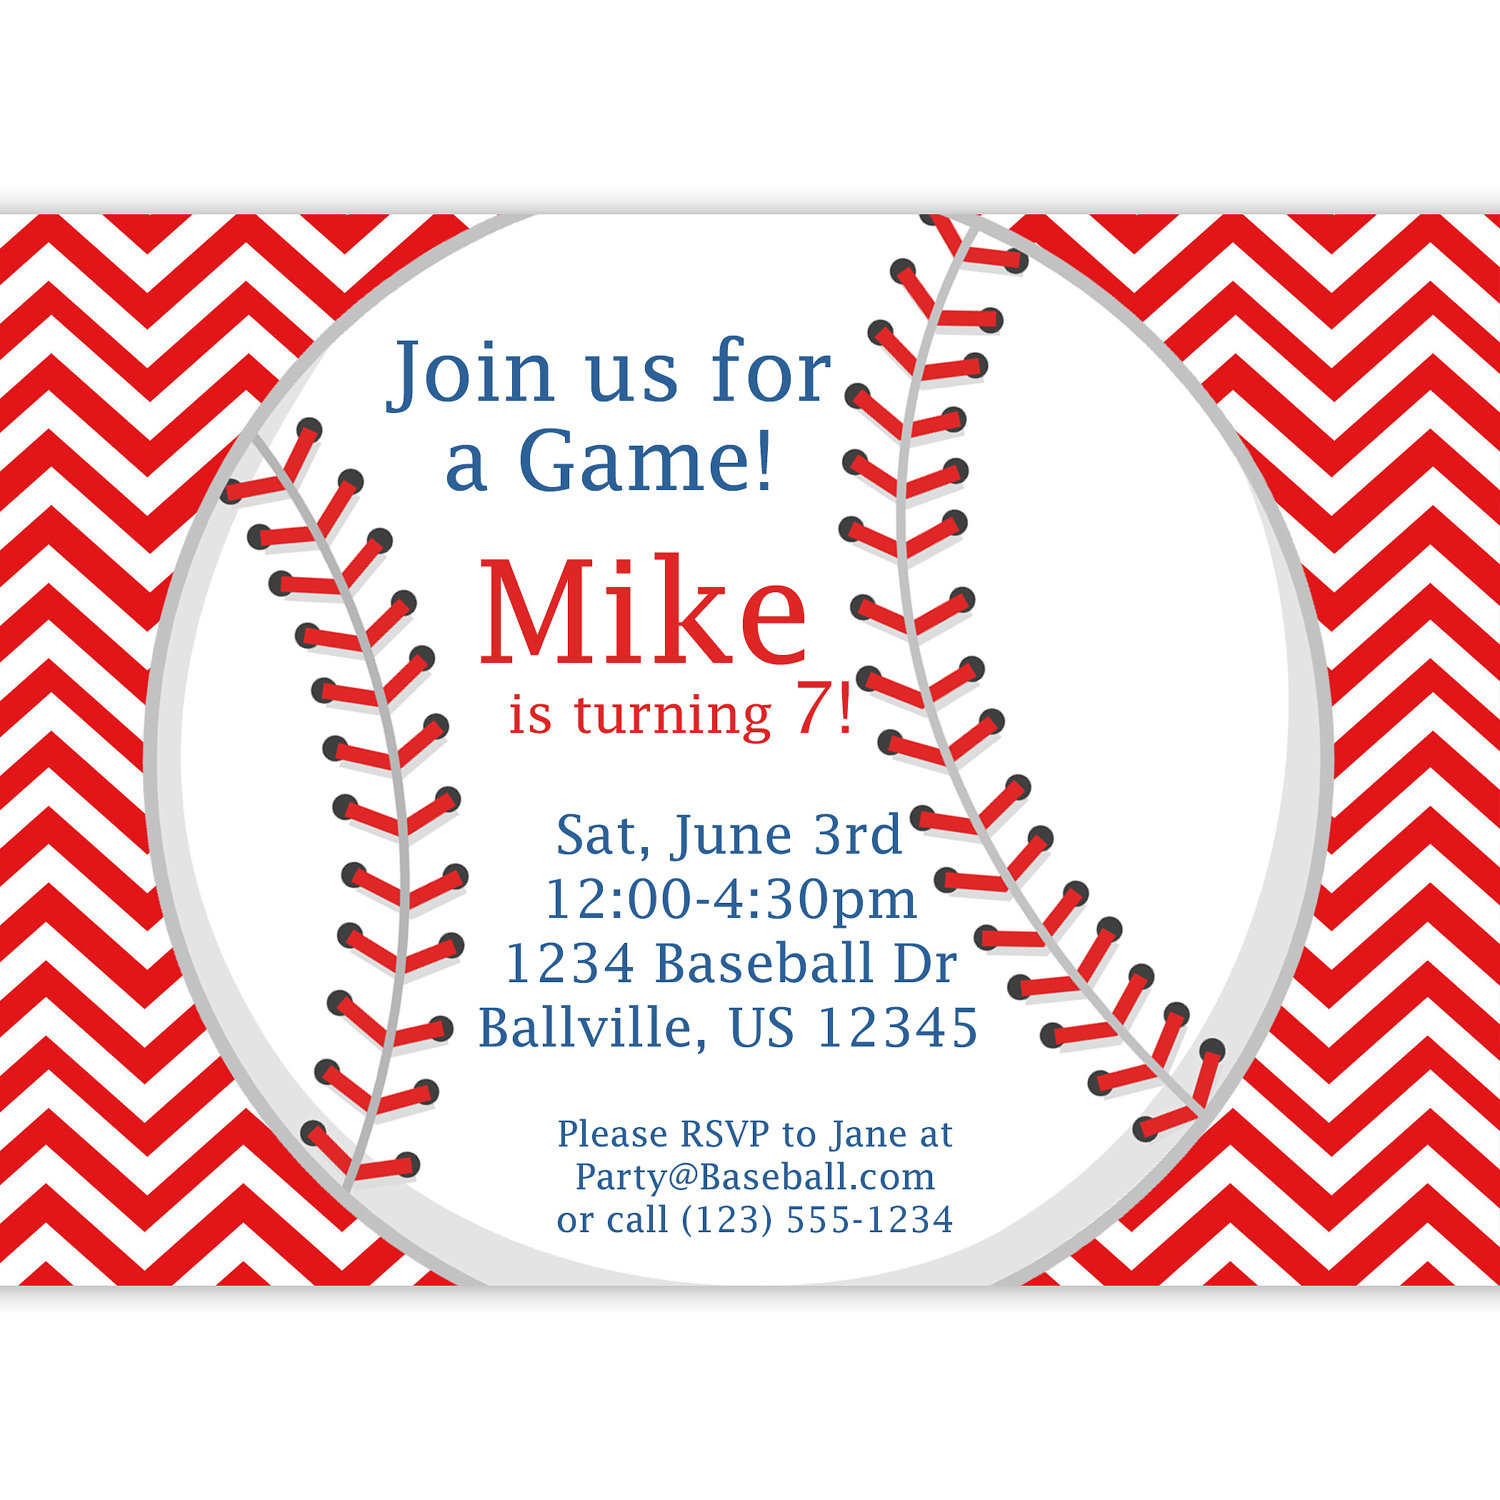 baseball themed birthday party invitation wording ; c5daac77b76772a6198b005c65edd8ad